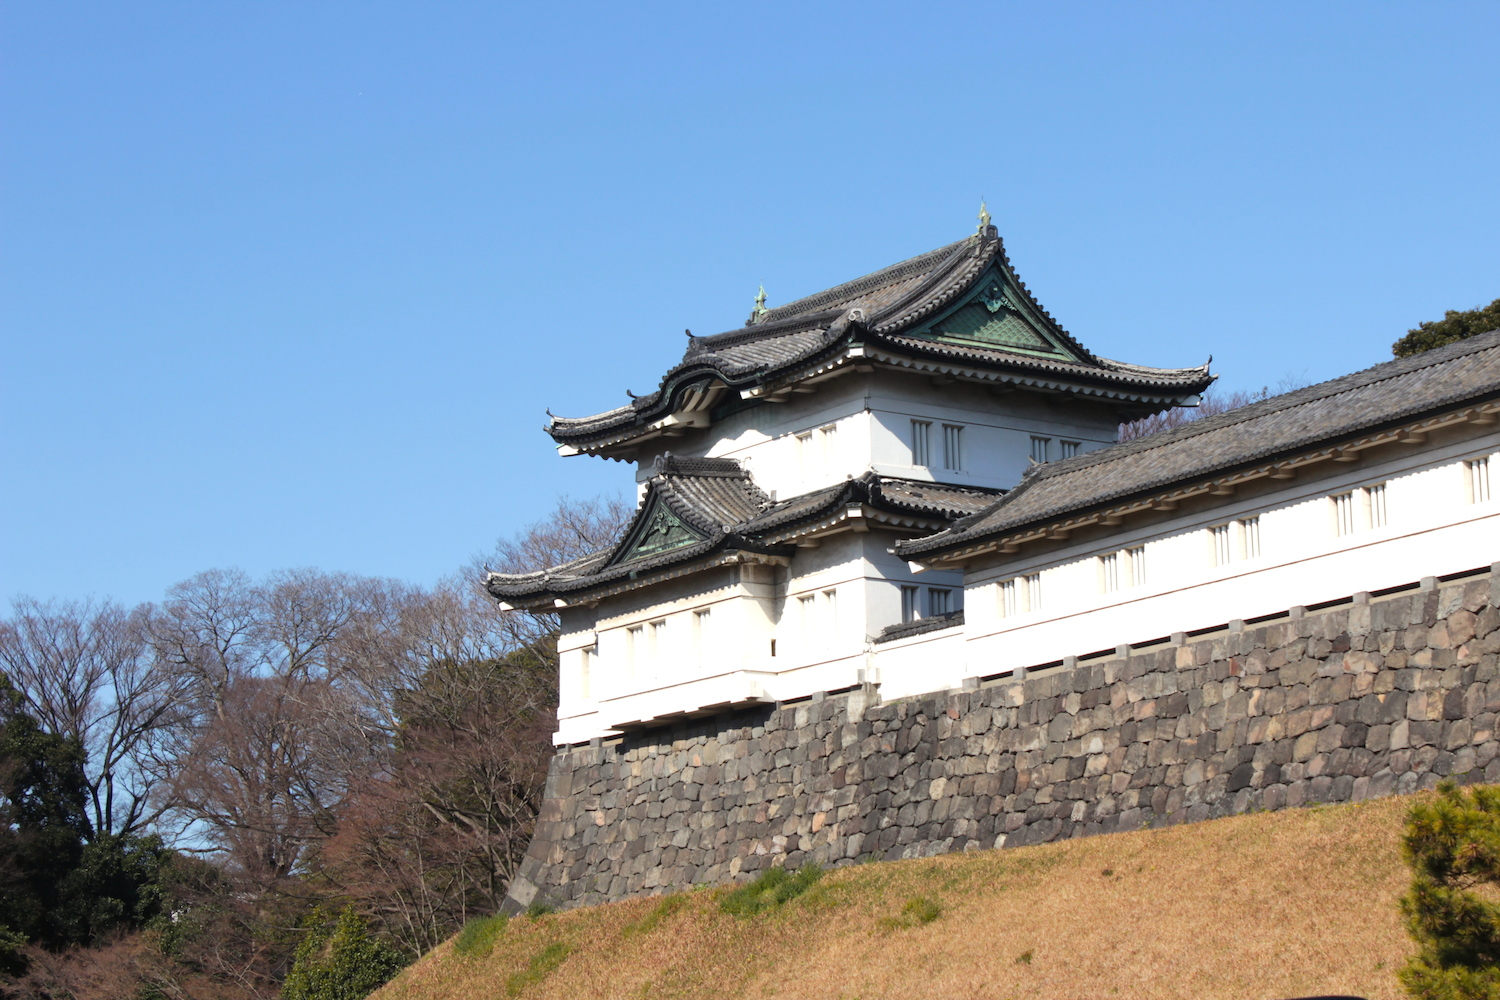 Heiseikan Tokyo, The Imperial Palace, Tokyo 皇居 | Dream Of A City